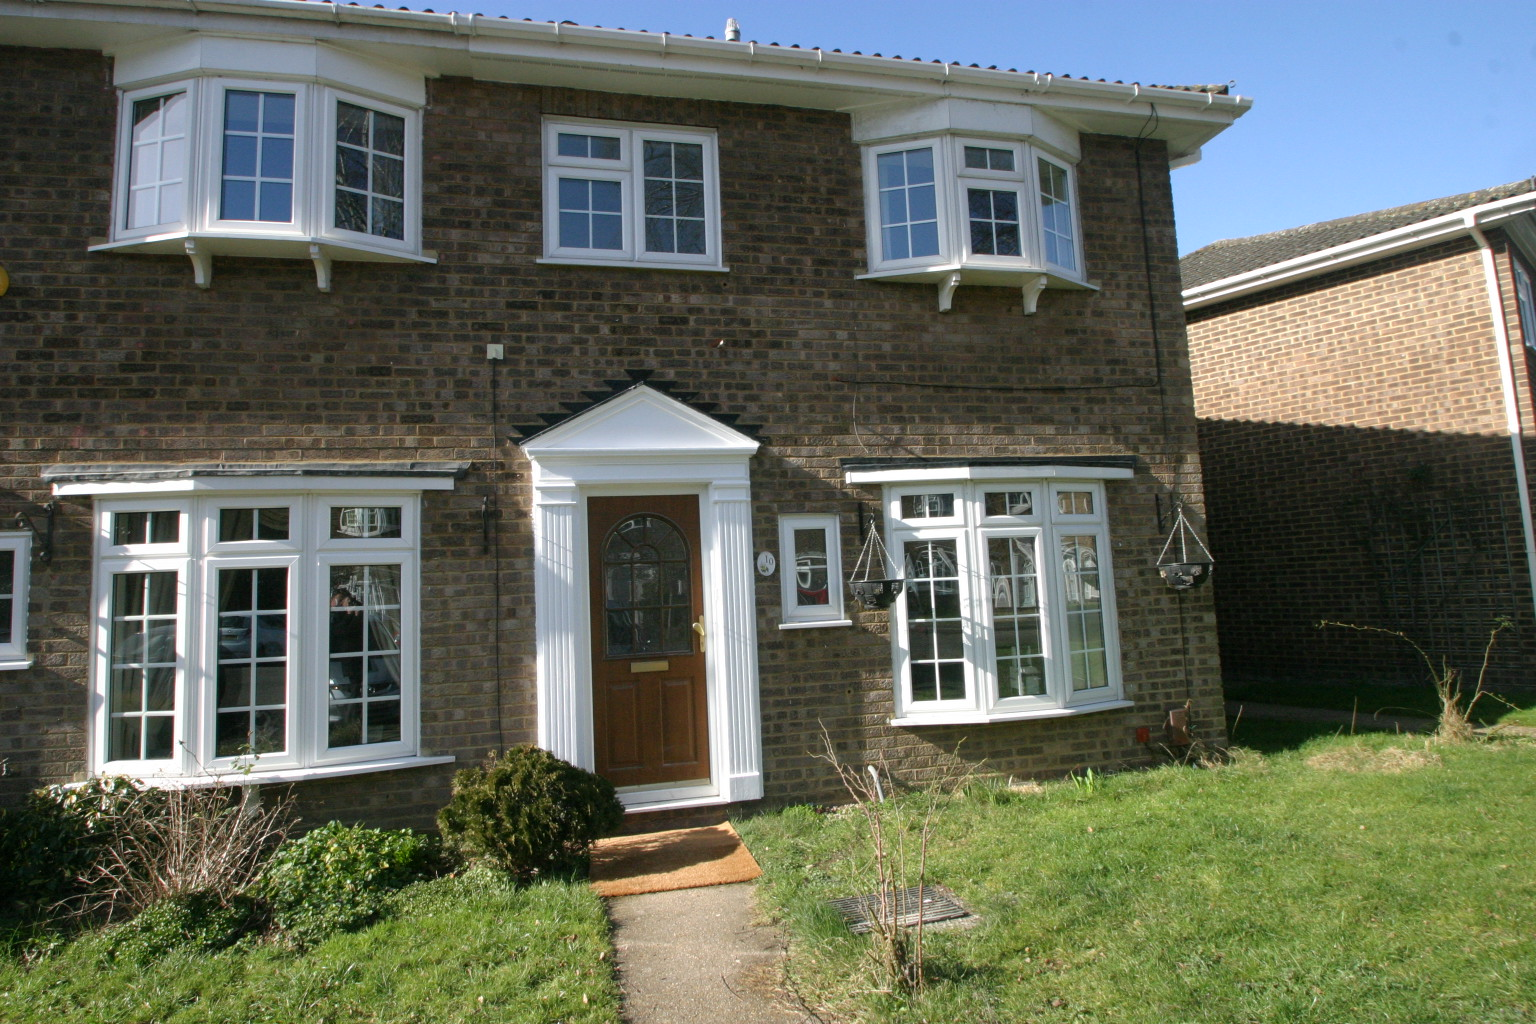 3 Bedroom End of Terrace House, Egham